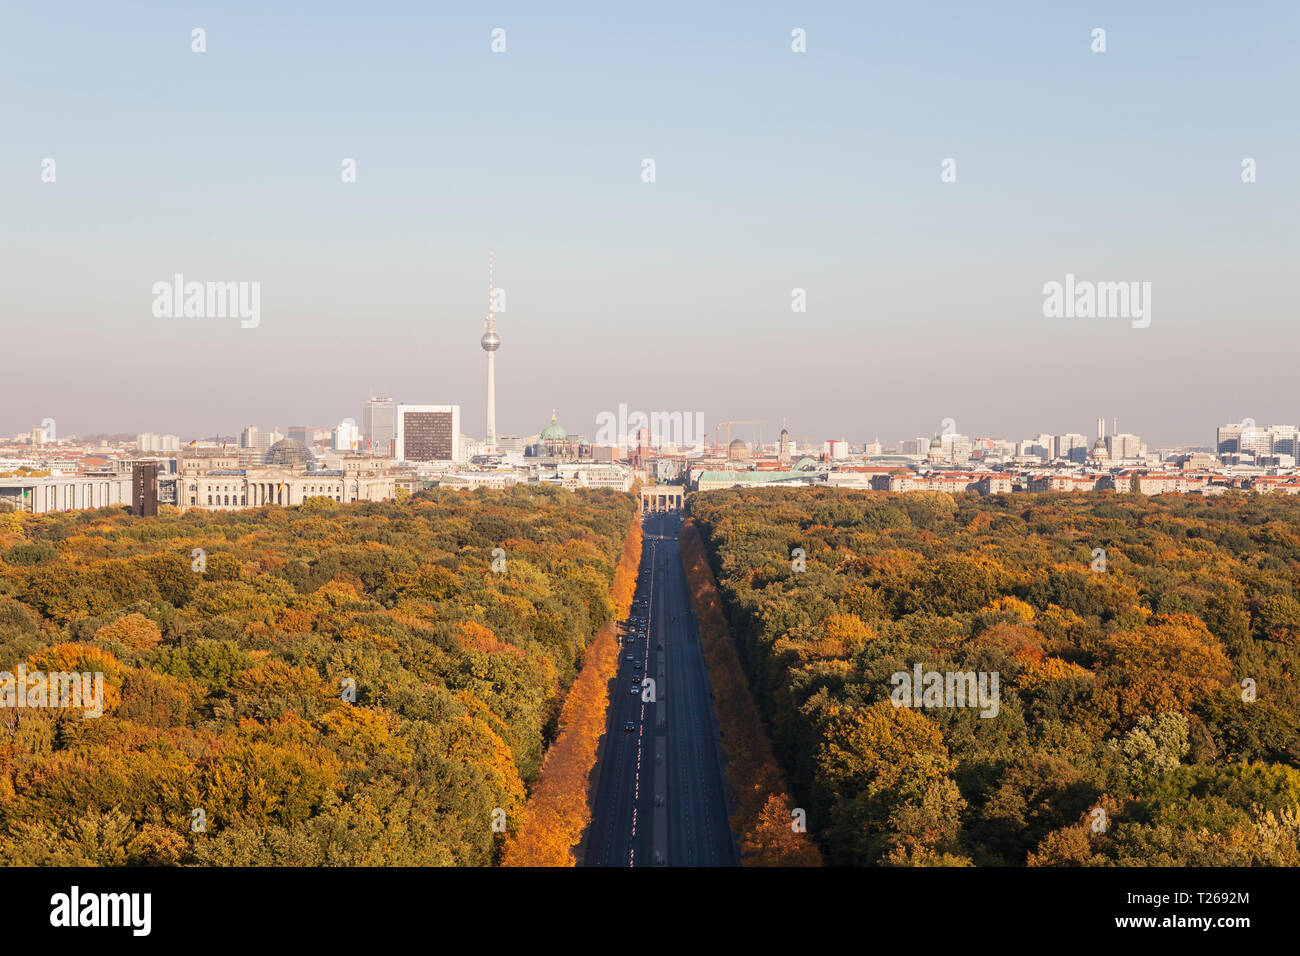 Germany, Berlin, view to Großer Tiergarten and cityscape from Victory Column in autumn - Stock Image